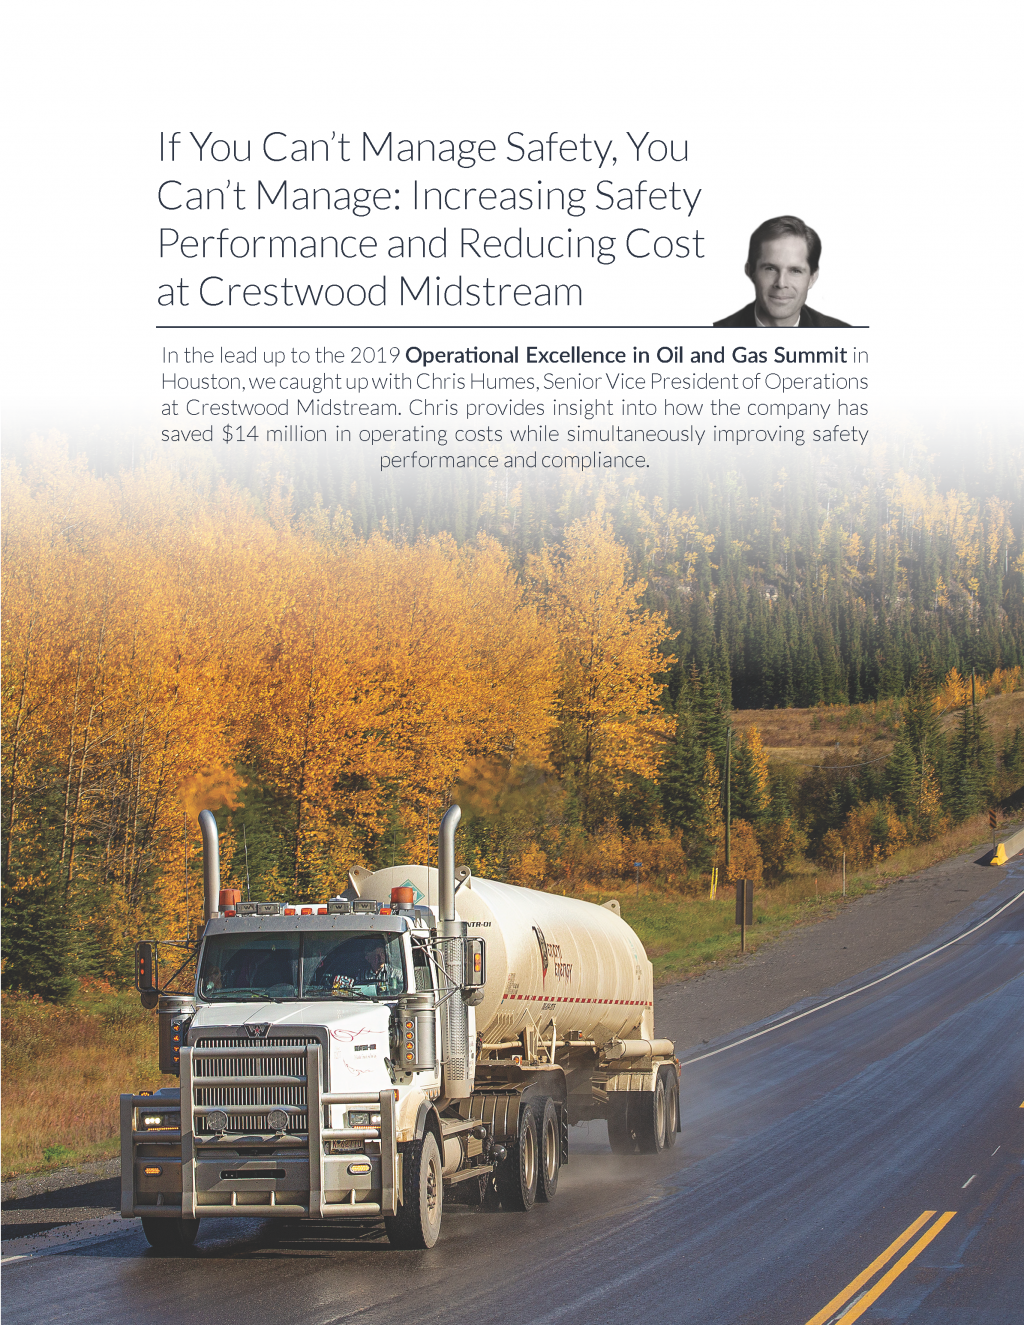 If You Can't Manage Safety, You Can't Manage: Increasing Safety Performance and Reducing Cost at Crestwood Midstream